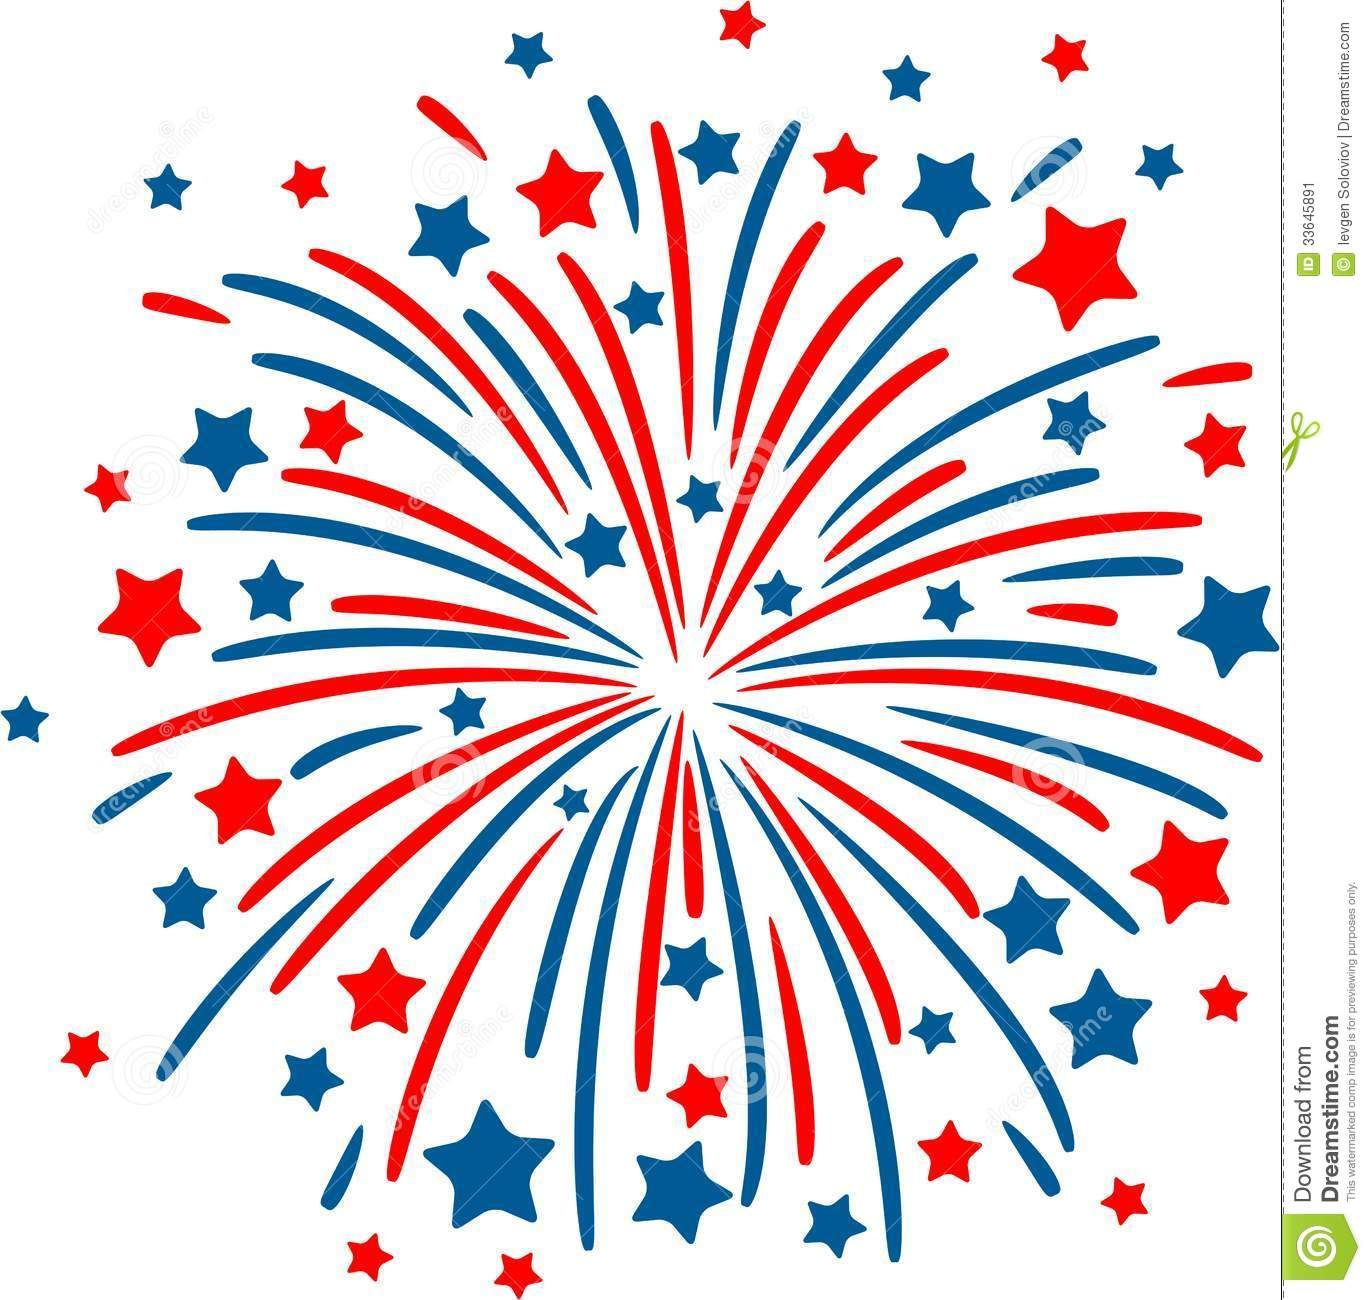 Clipart fireworks. No background panda free